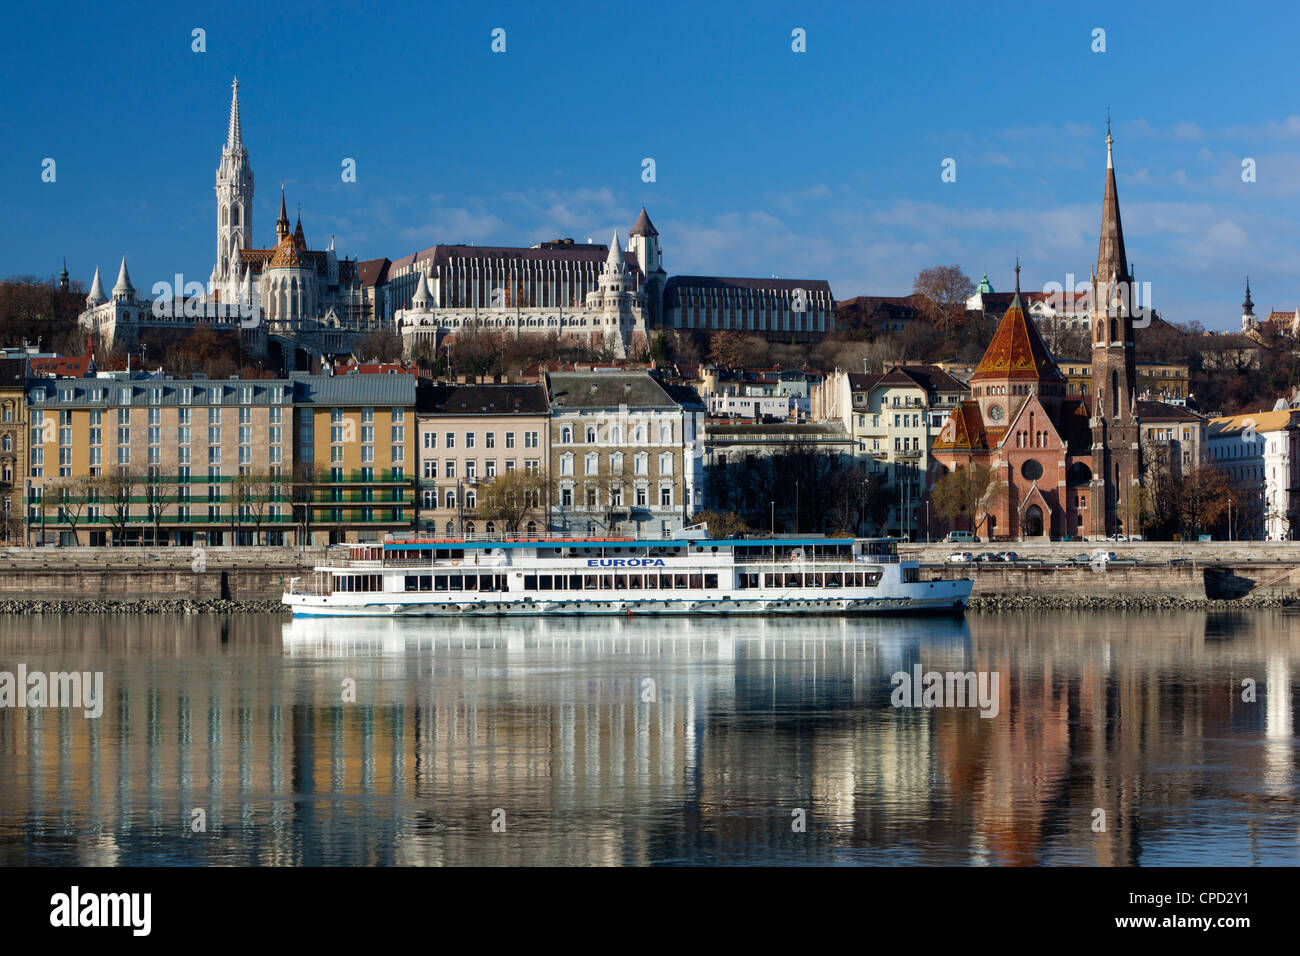 View over River Danube to Matthias Church (Matyas Templom) and Fishermen's Bastion, Budapest, Central Hungary, Hungary, Stock Photo